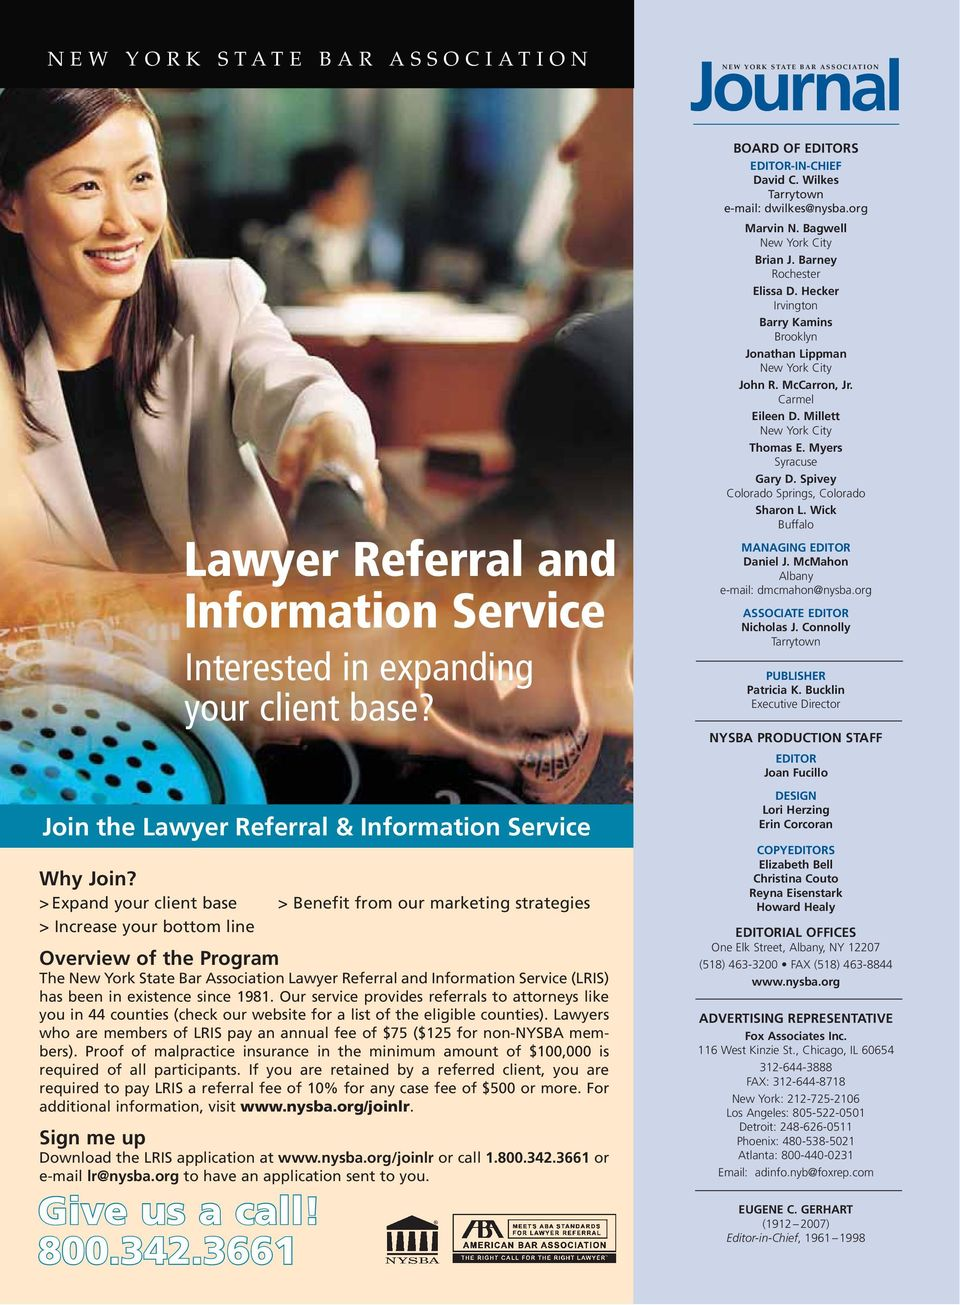 > Expand your client base > Benefit from our marketing strategies > Increase your bottom line Overview of the Program The New York State Bar Association Lawyer Referral and Information Service (LRIS)